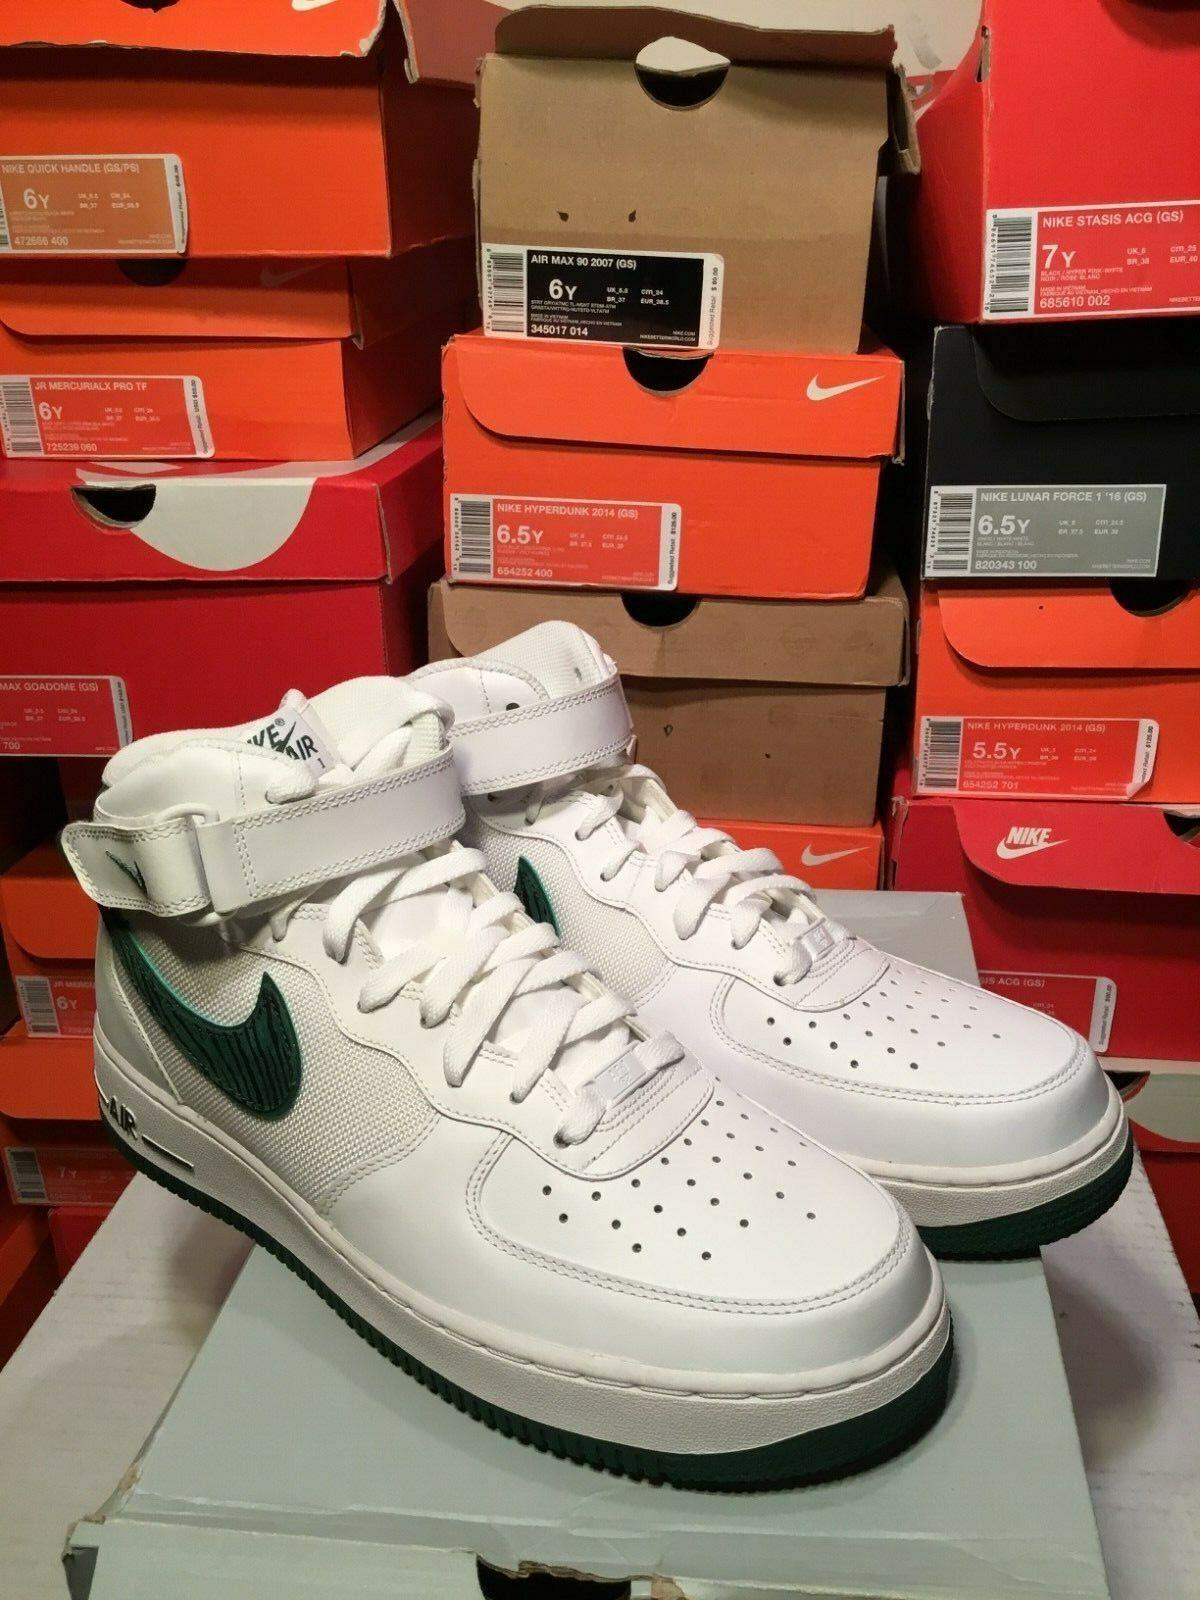 SALE NIKE AIR FORCE 1 MID '07 WHITE GORGE GREEN 315123 118 SIZE 11.5 NEW